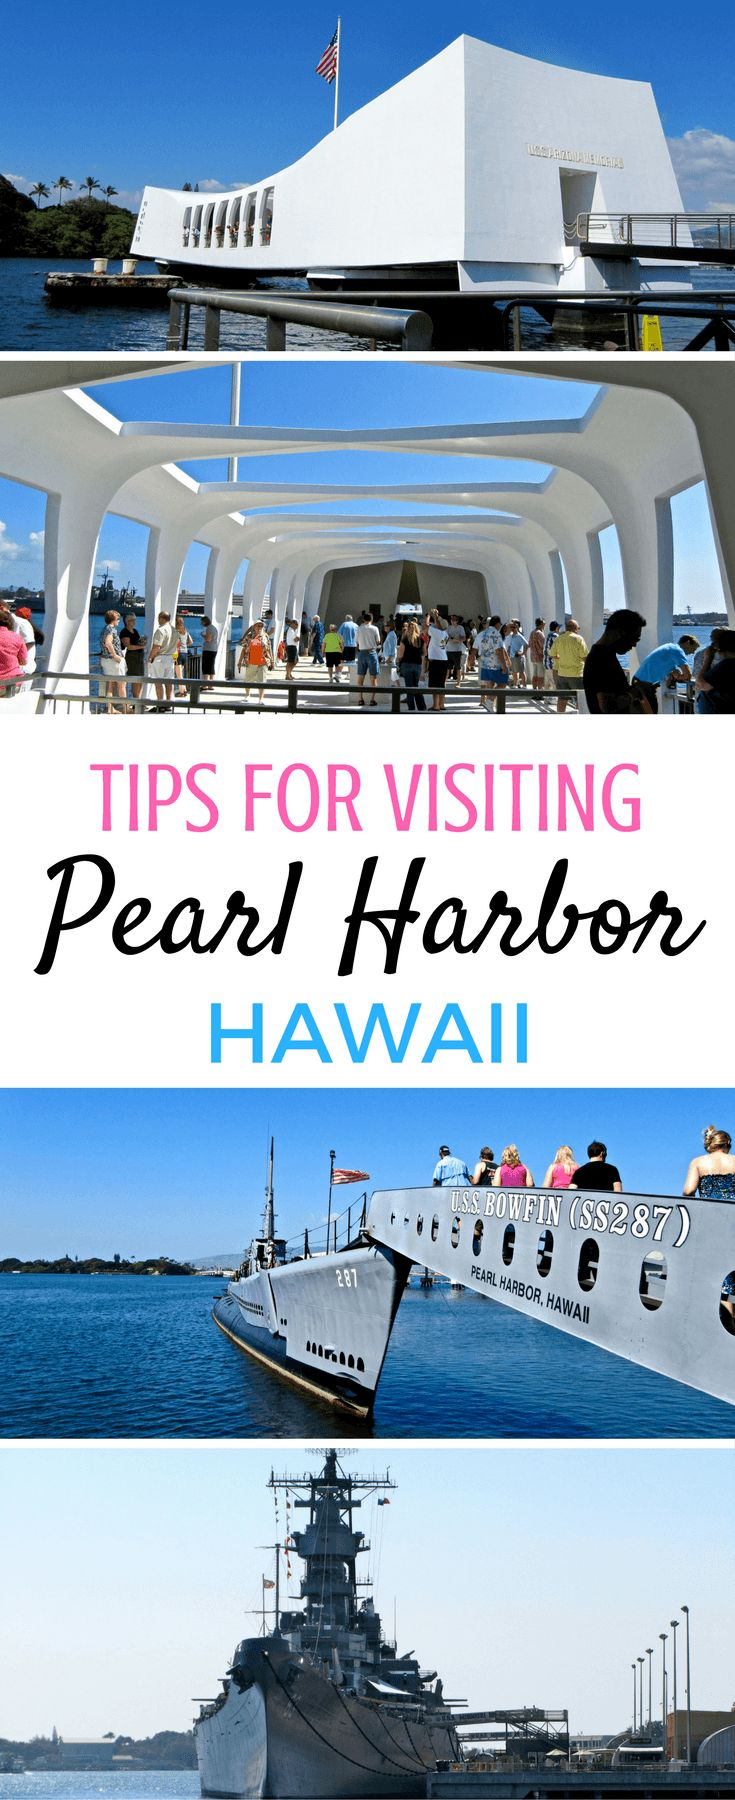 Travel Guide Tips for Visiting Pearl Harbor